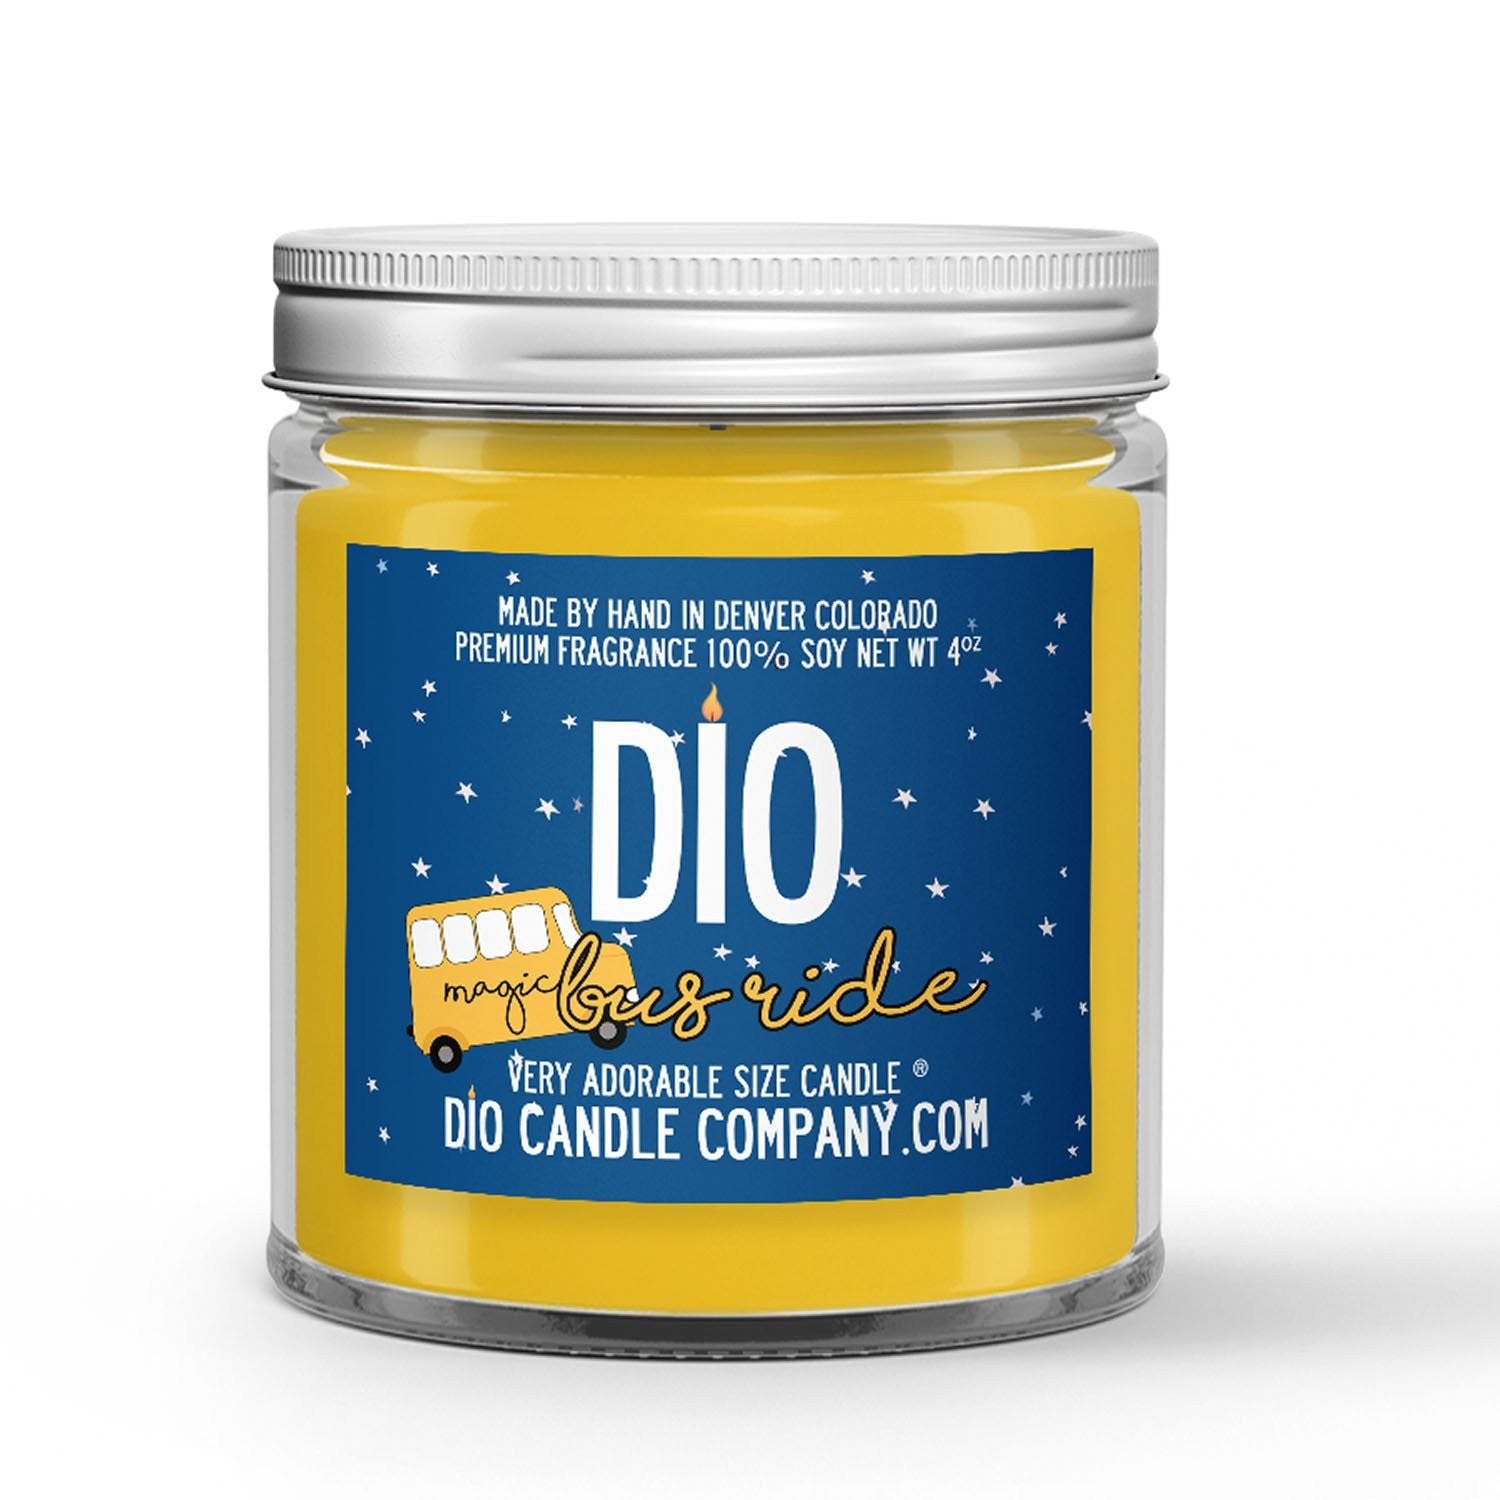 Magic Bus Candle - Lemon - Cream - 4oz Very Adorable Size Candle® - Dio Candle Company